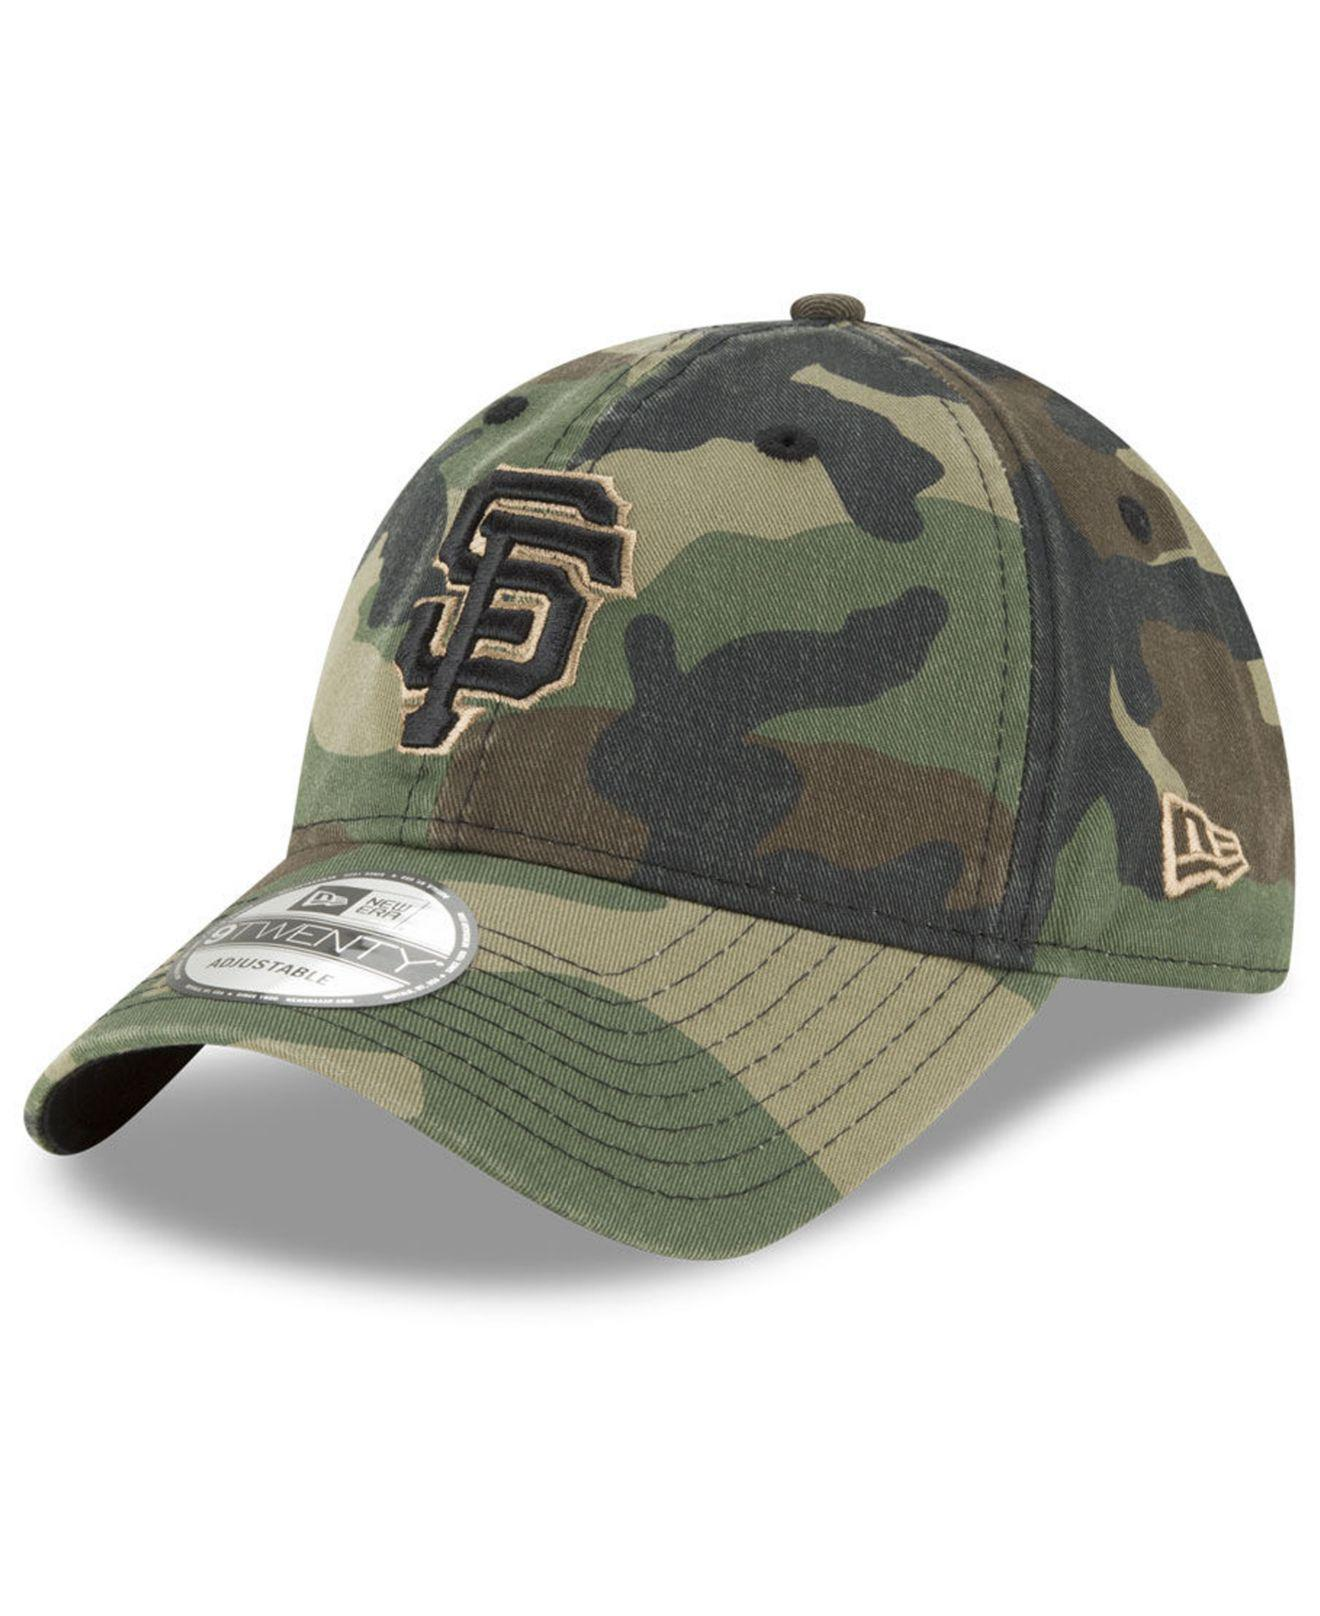 bc87ced4 KTZ San Francisco Giants Camo Core Classic 9twenty Cap in Green for ...